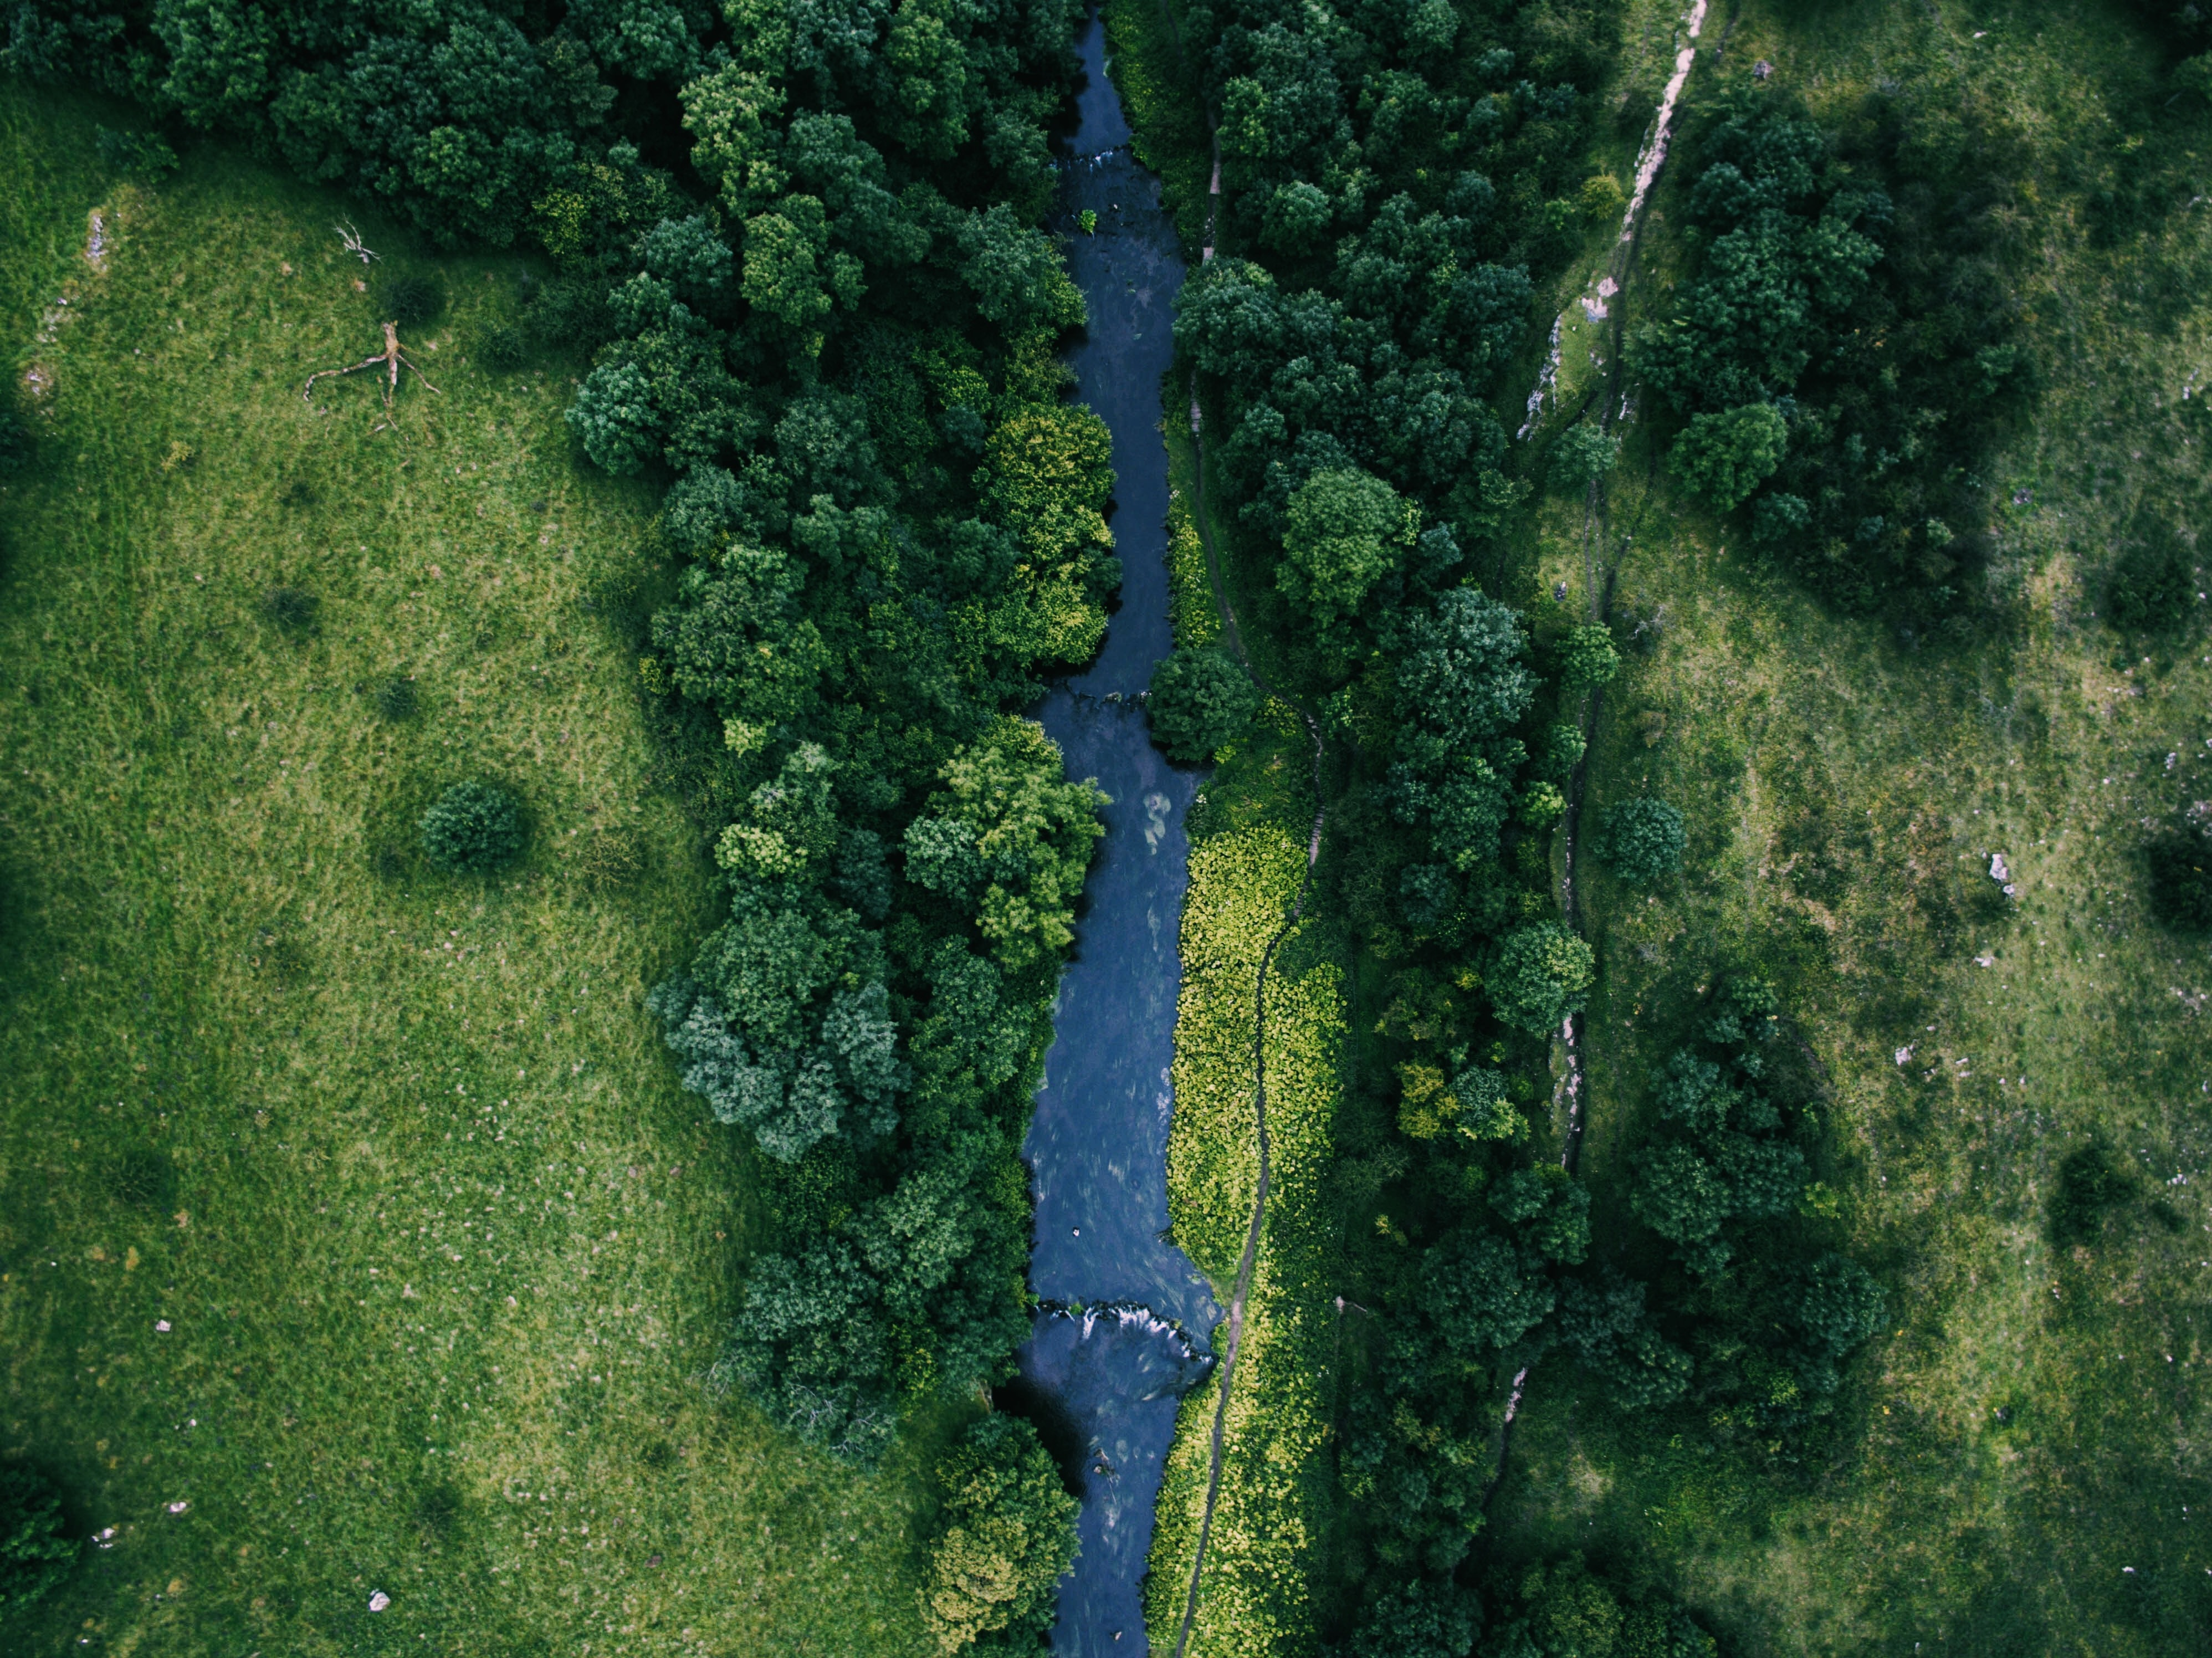 bird's eye photography of river between trees and green grass